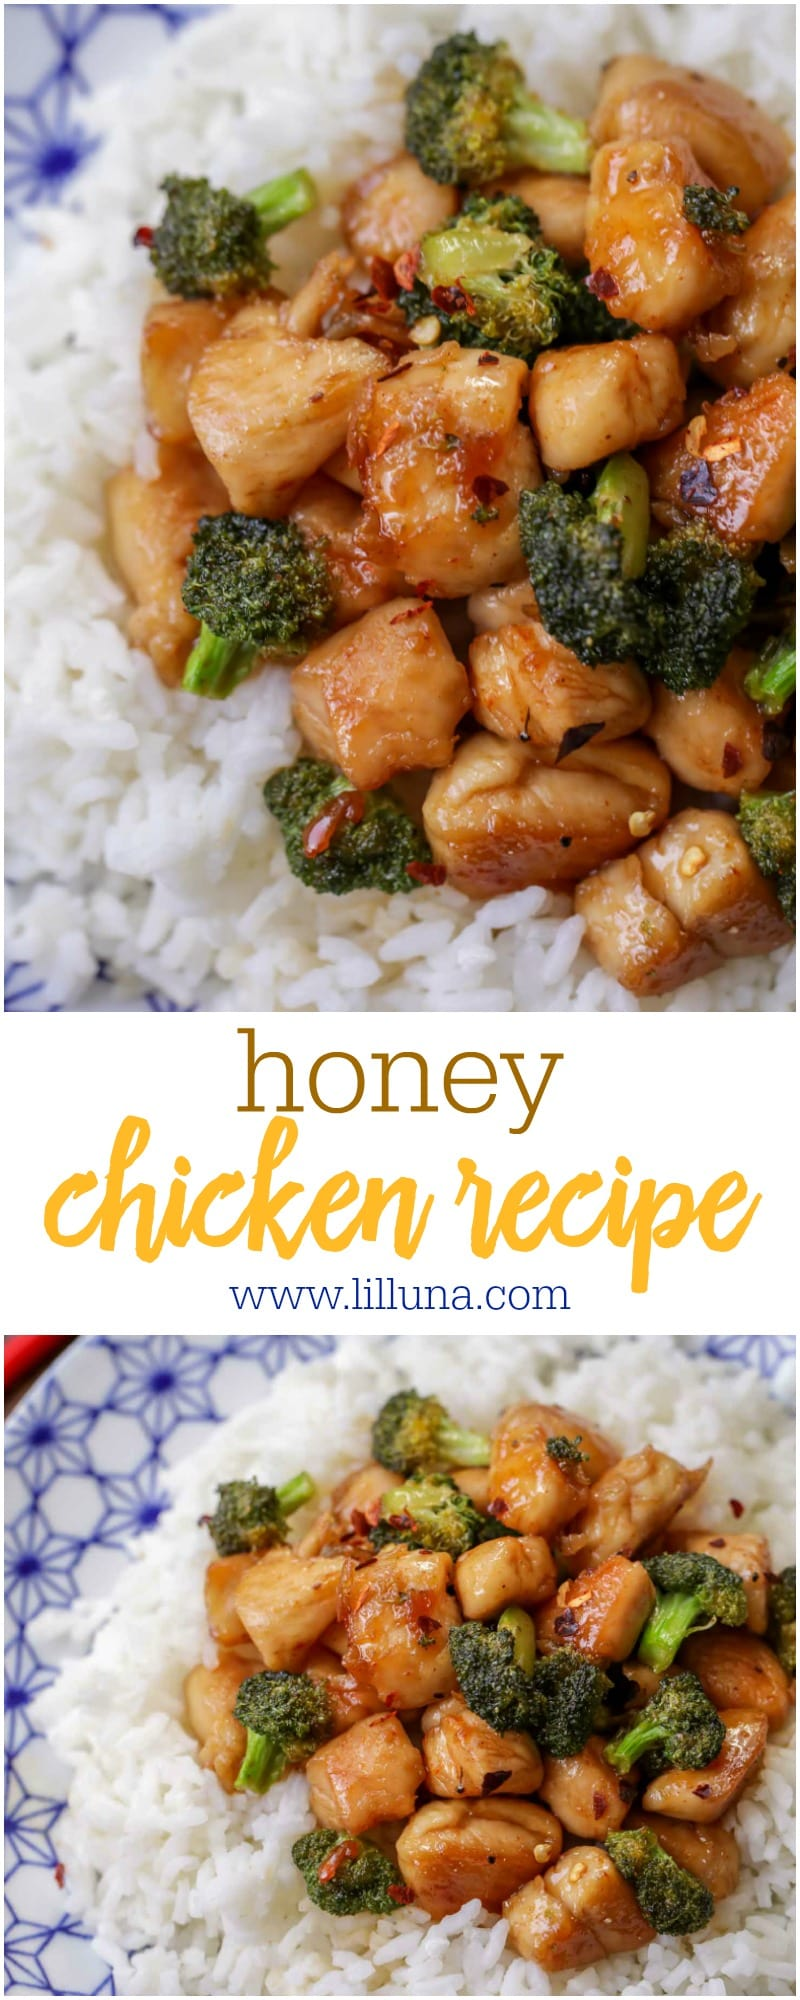 With a bit of spice and sweetness, this Honey Chicken recipe is great served with rice or noodles. Add your favorite veggies to make it even better!